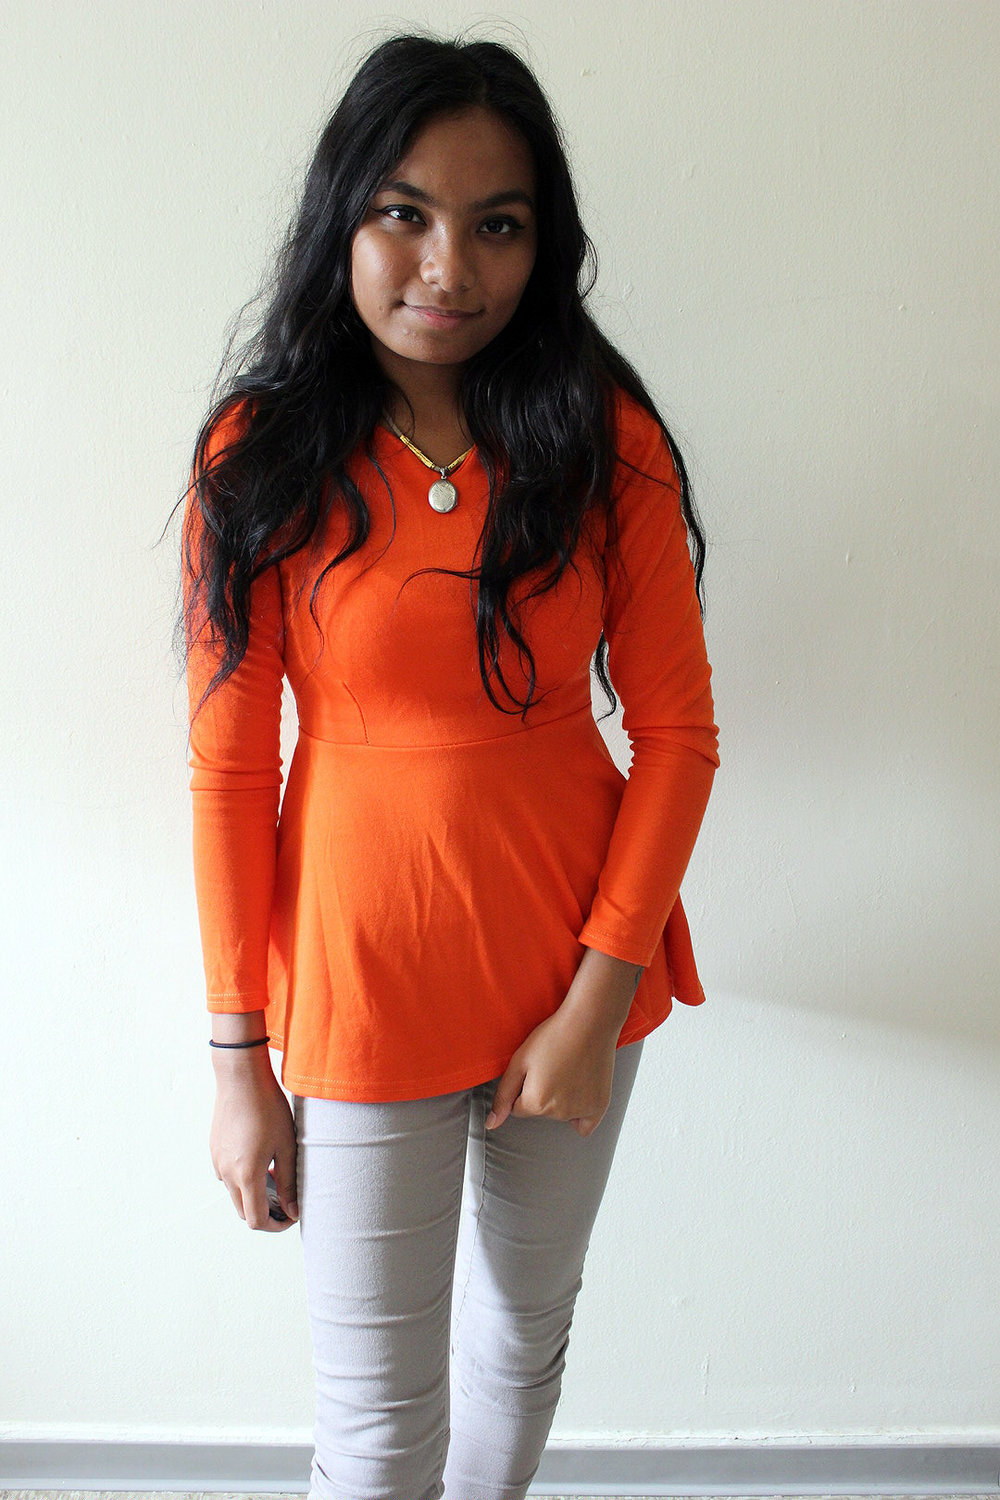 Orange-Top-Fall-Outfits-Style-Blogger-Fashionista-LINDATENCHITRAN-9-1616x1080.jpg